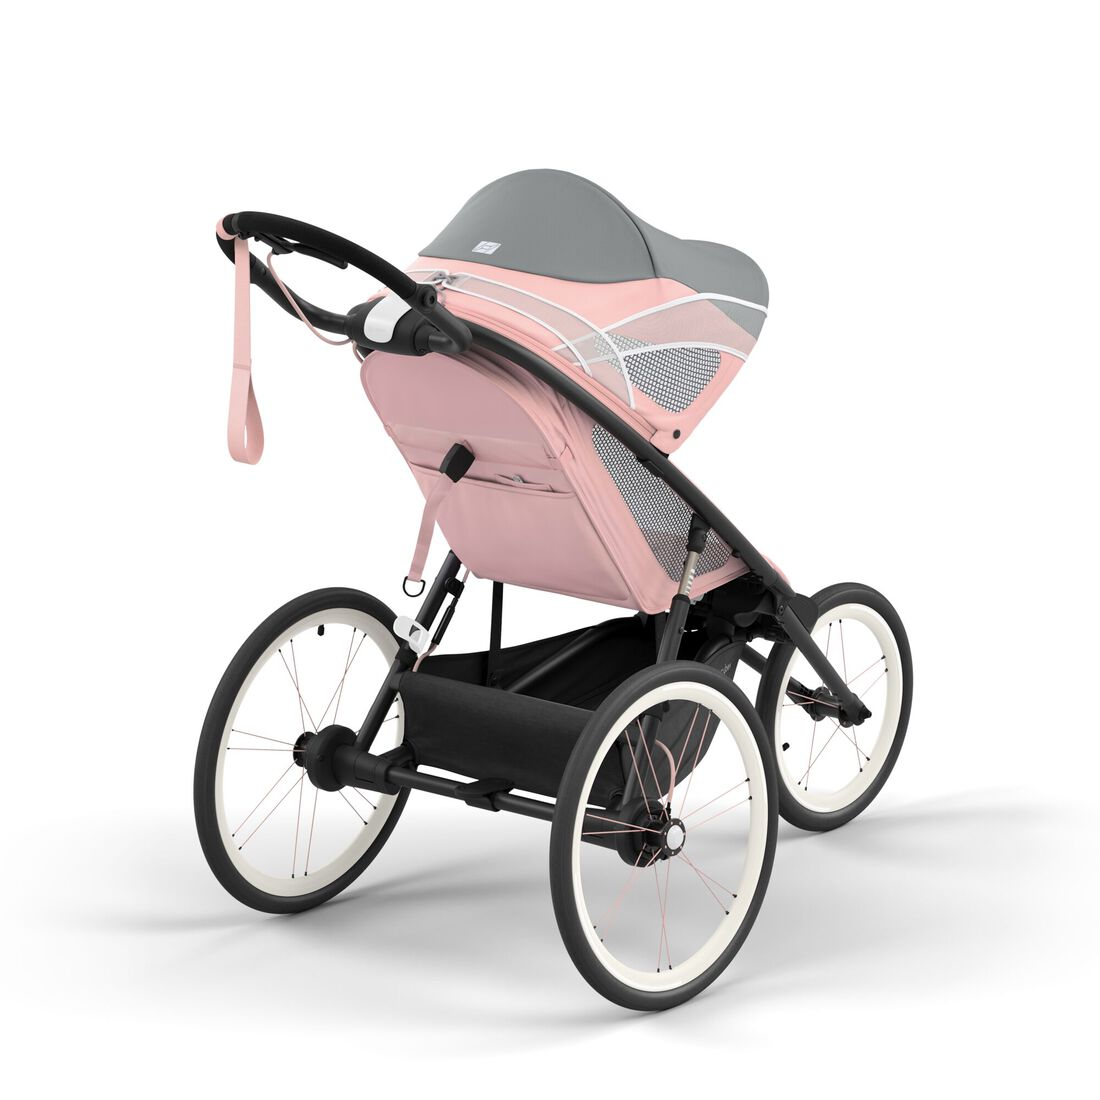 CYBEX Avi Seat Pack - Silver Pink in Silver Pink large image number 5